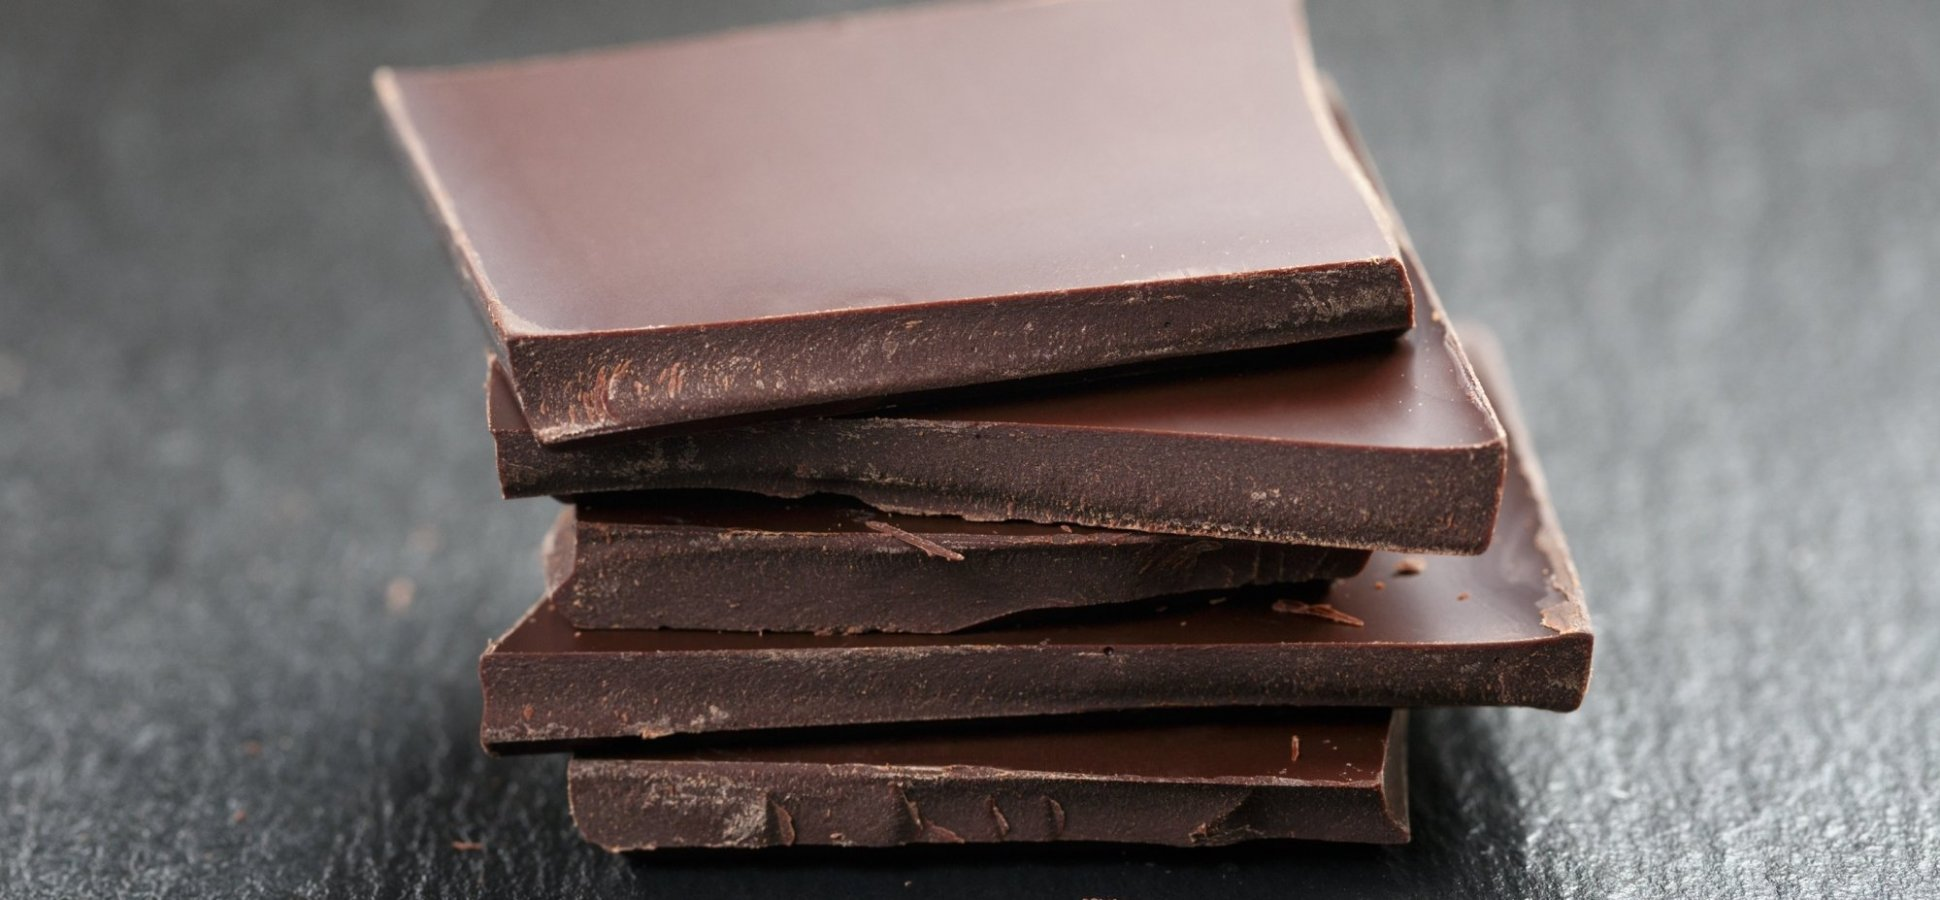 Scientists Just Discovered That Eating Chocolate Has an Amazing Affect On Happiness. But There Is a (Literally) Small Catch